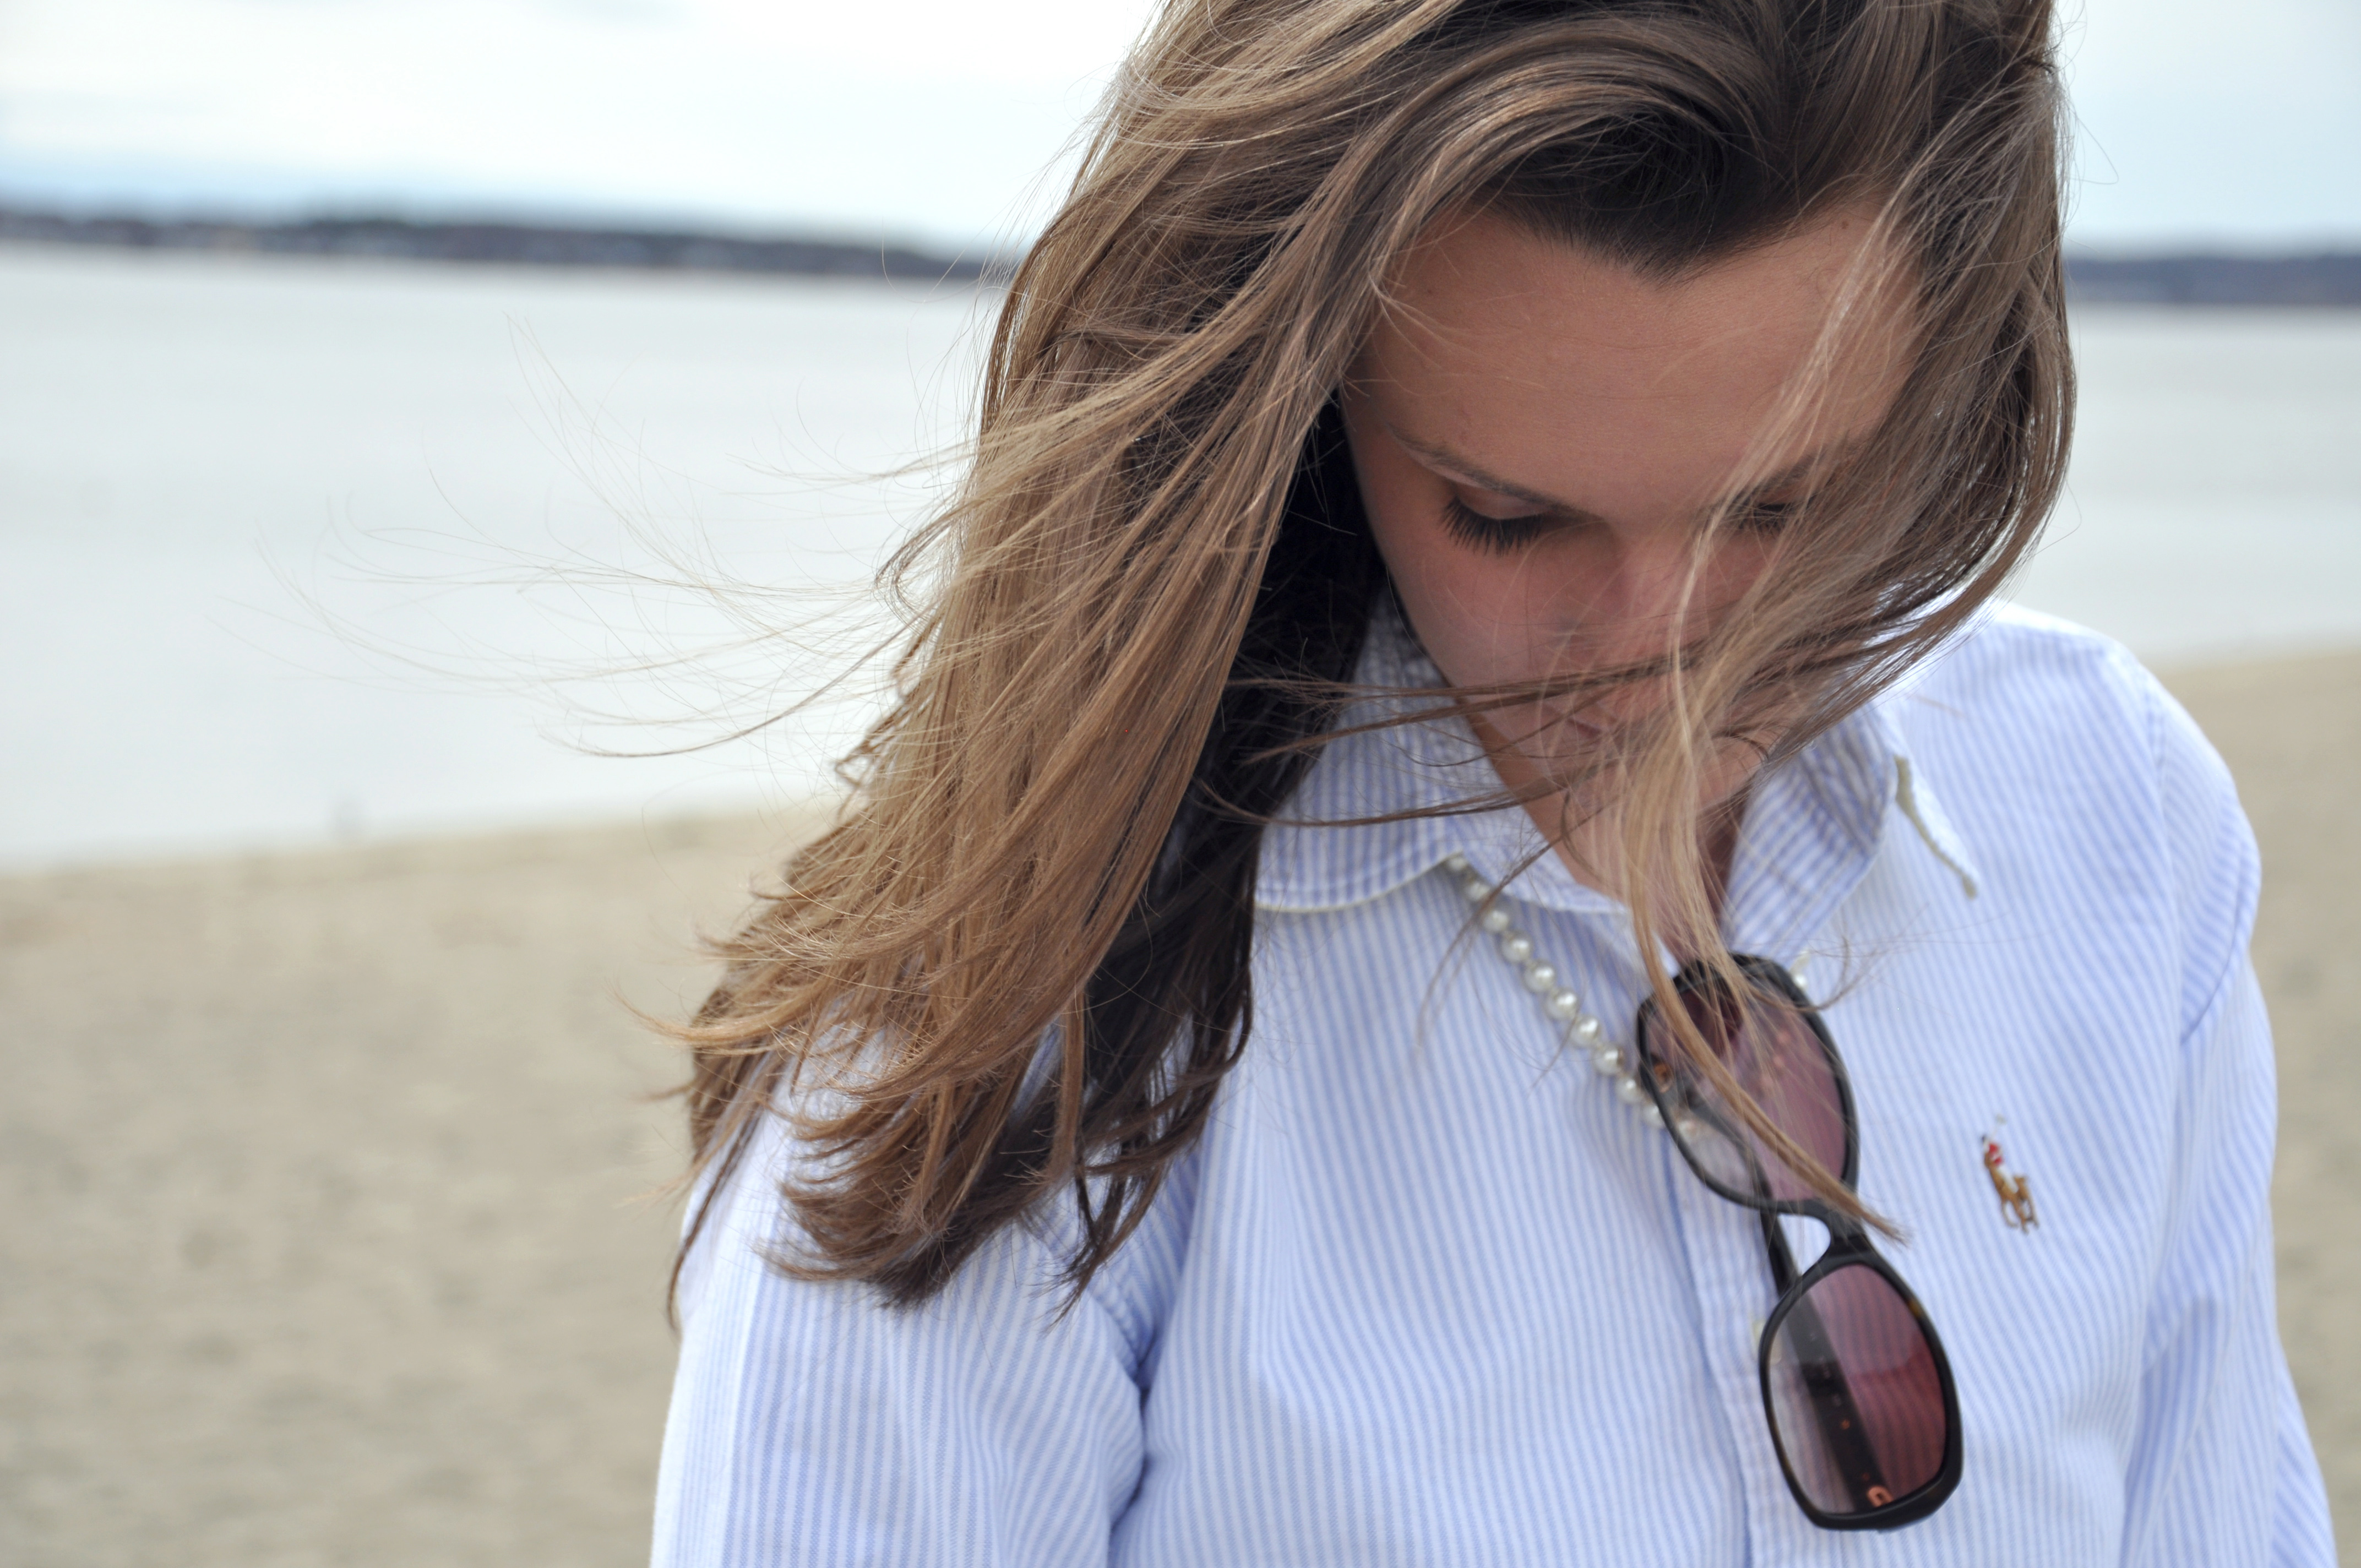 Classic New England Style - Polo & Pearls